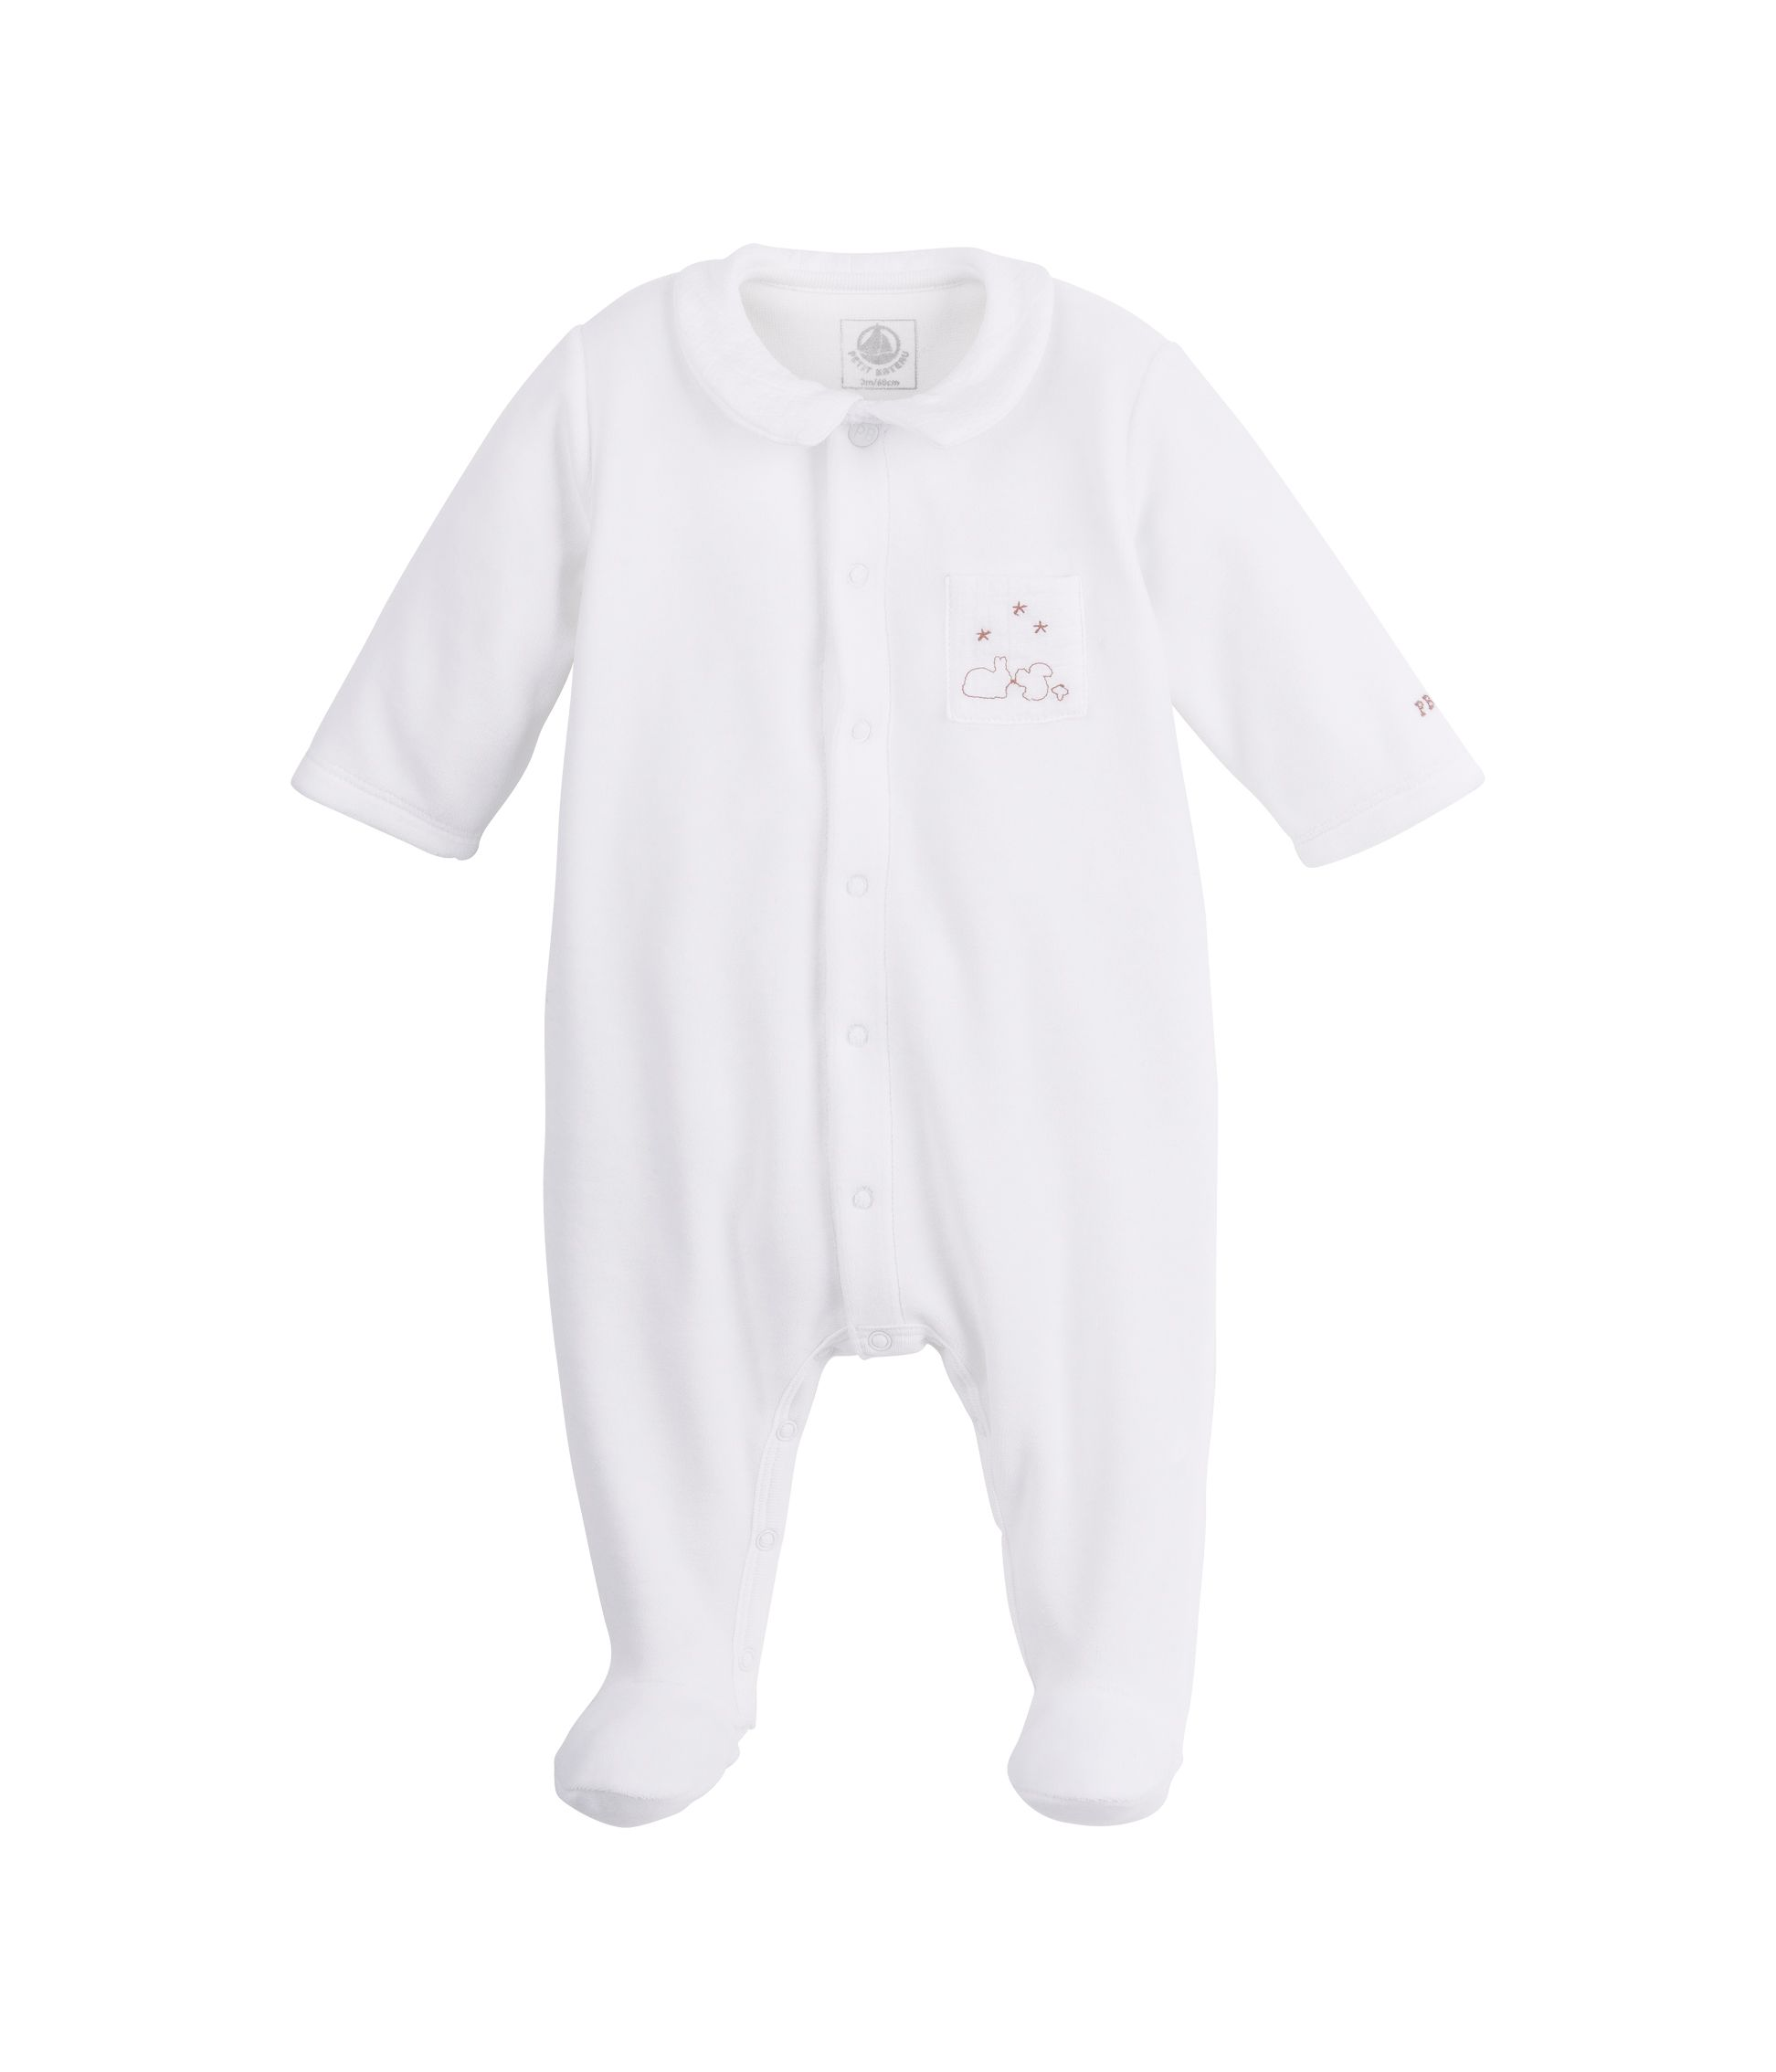 Baby front opening sleepsuit with collar